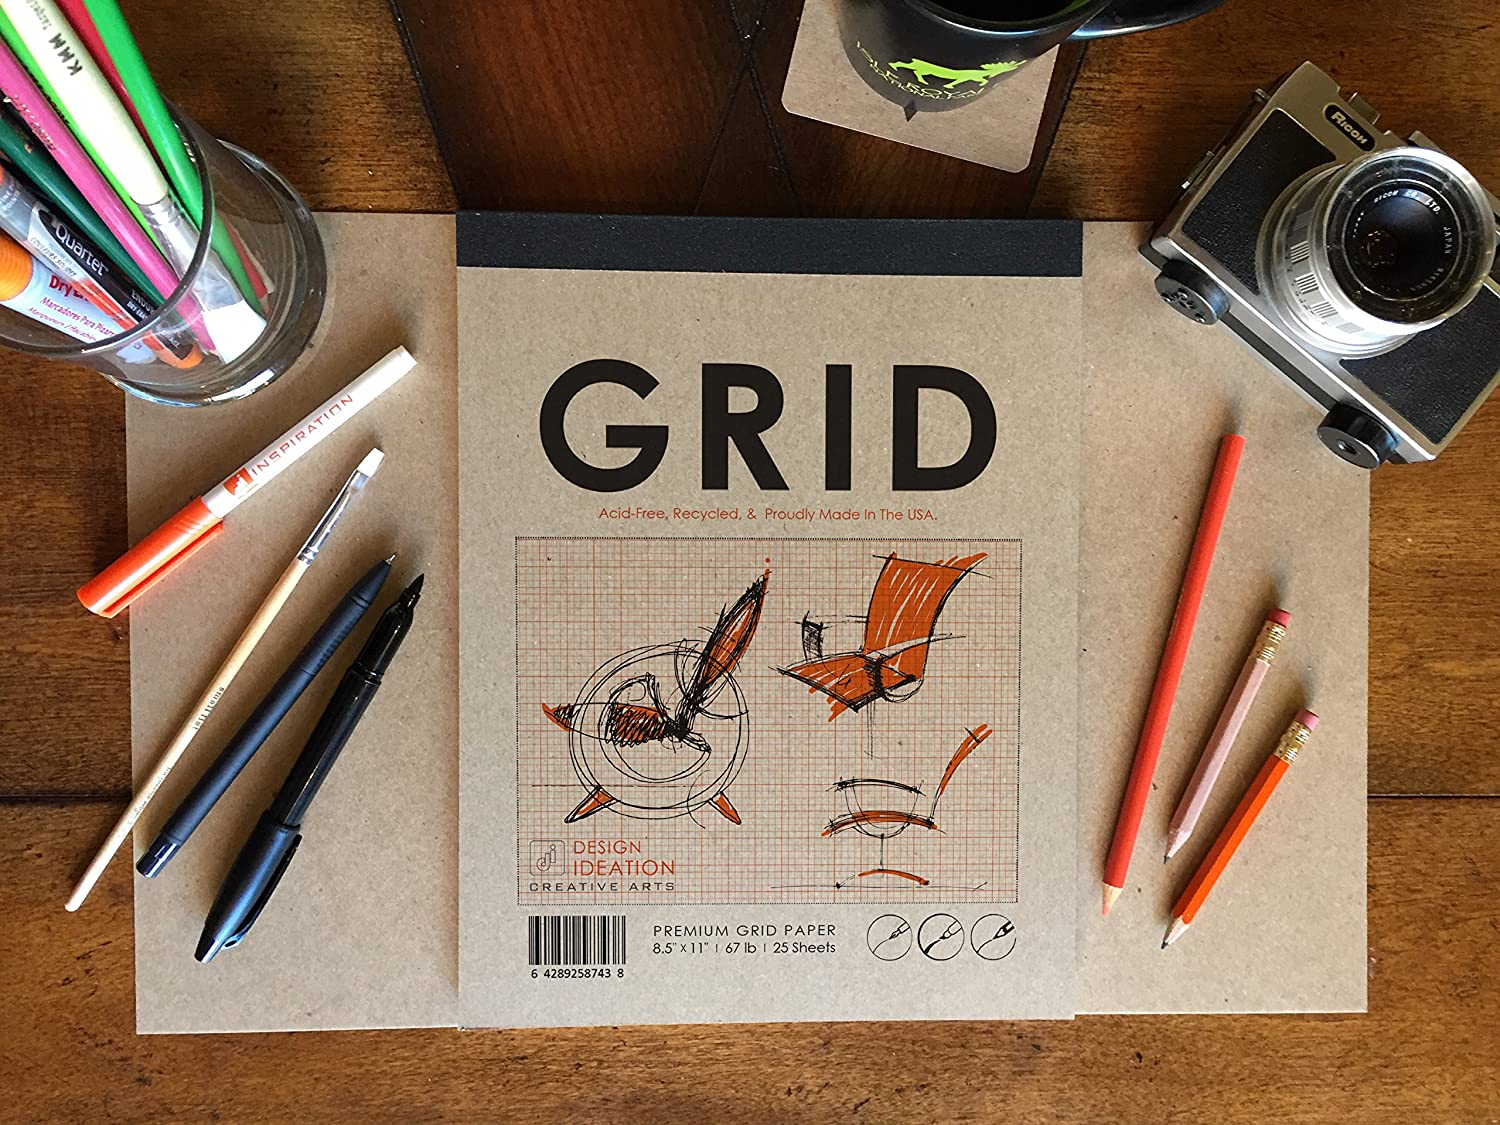 Marker and Watercolor Paints 25 Sheet Pack. Design and Education Design Ideation Multi-Media Grid Paper : Creative Project Grid Paper for Pencil 1//4 Box Grid Orange Ink Great for Art